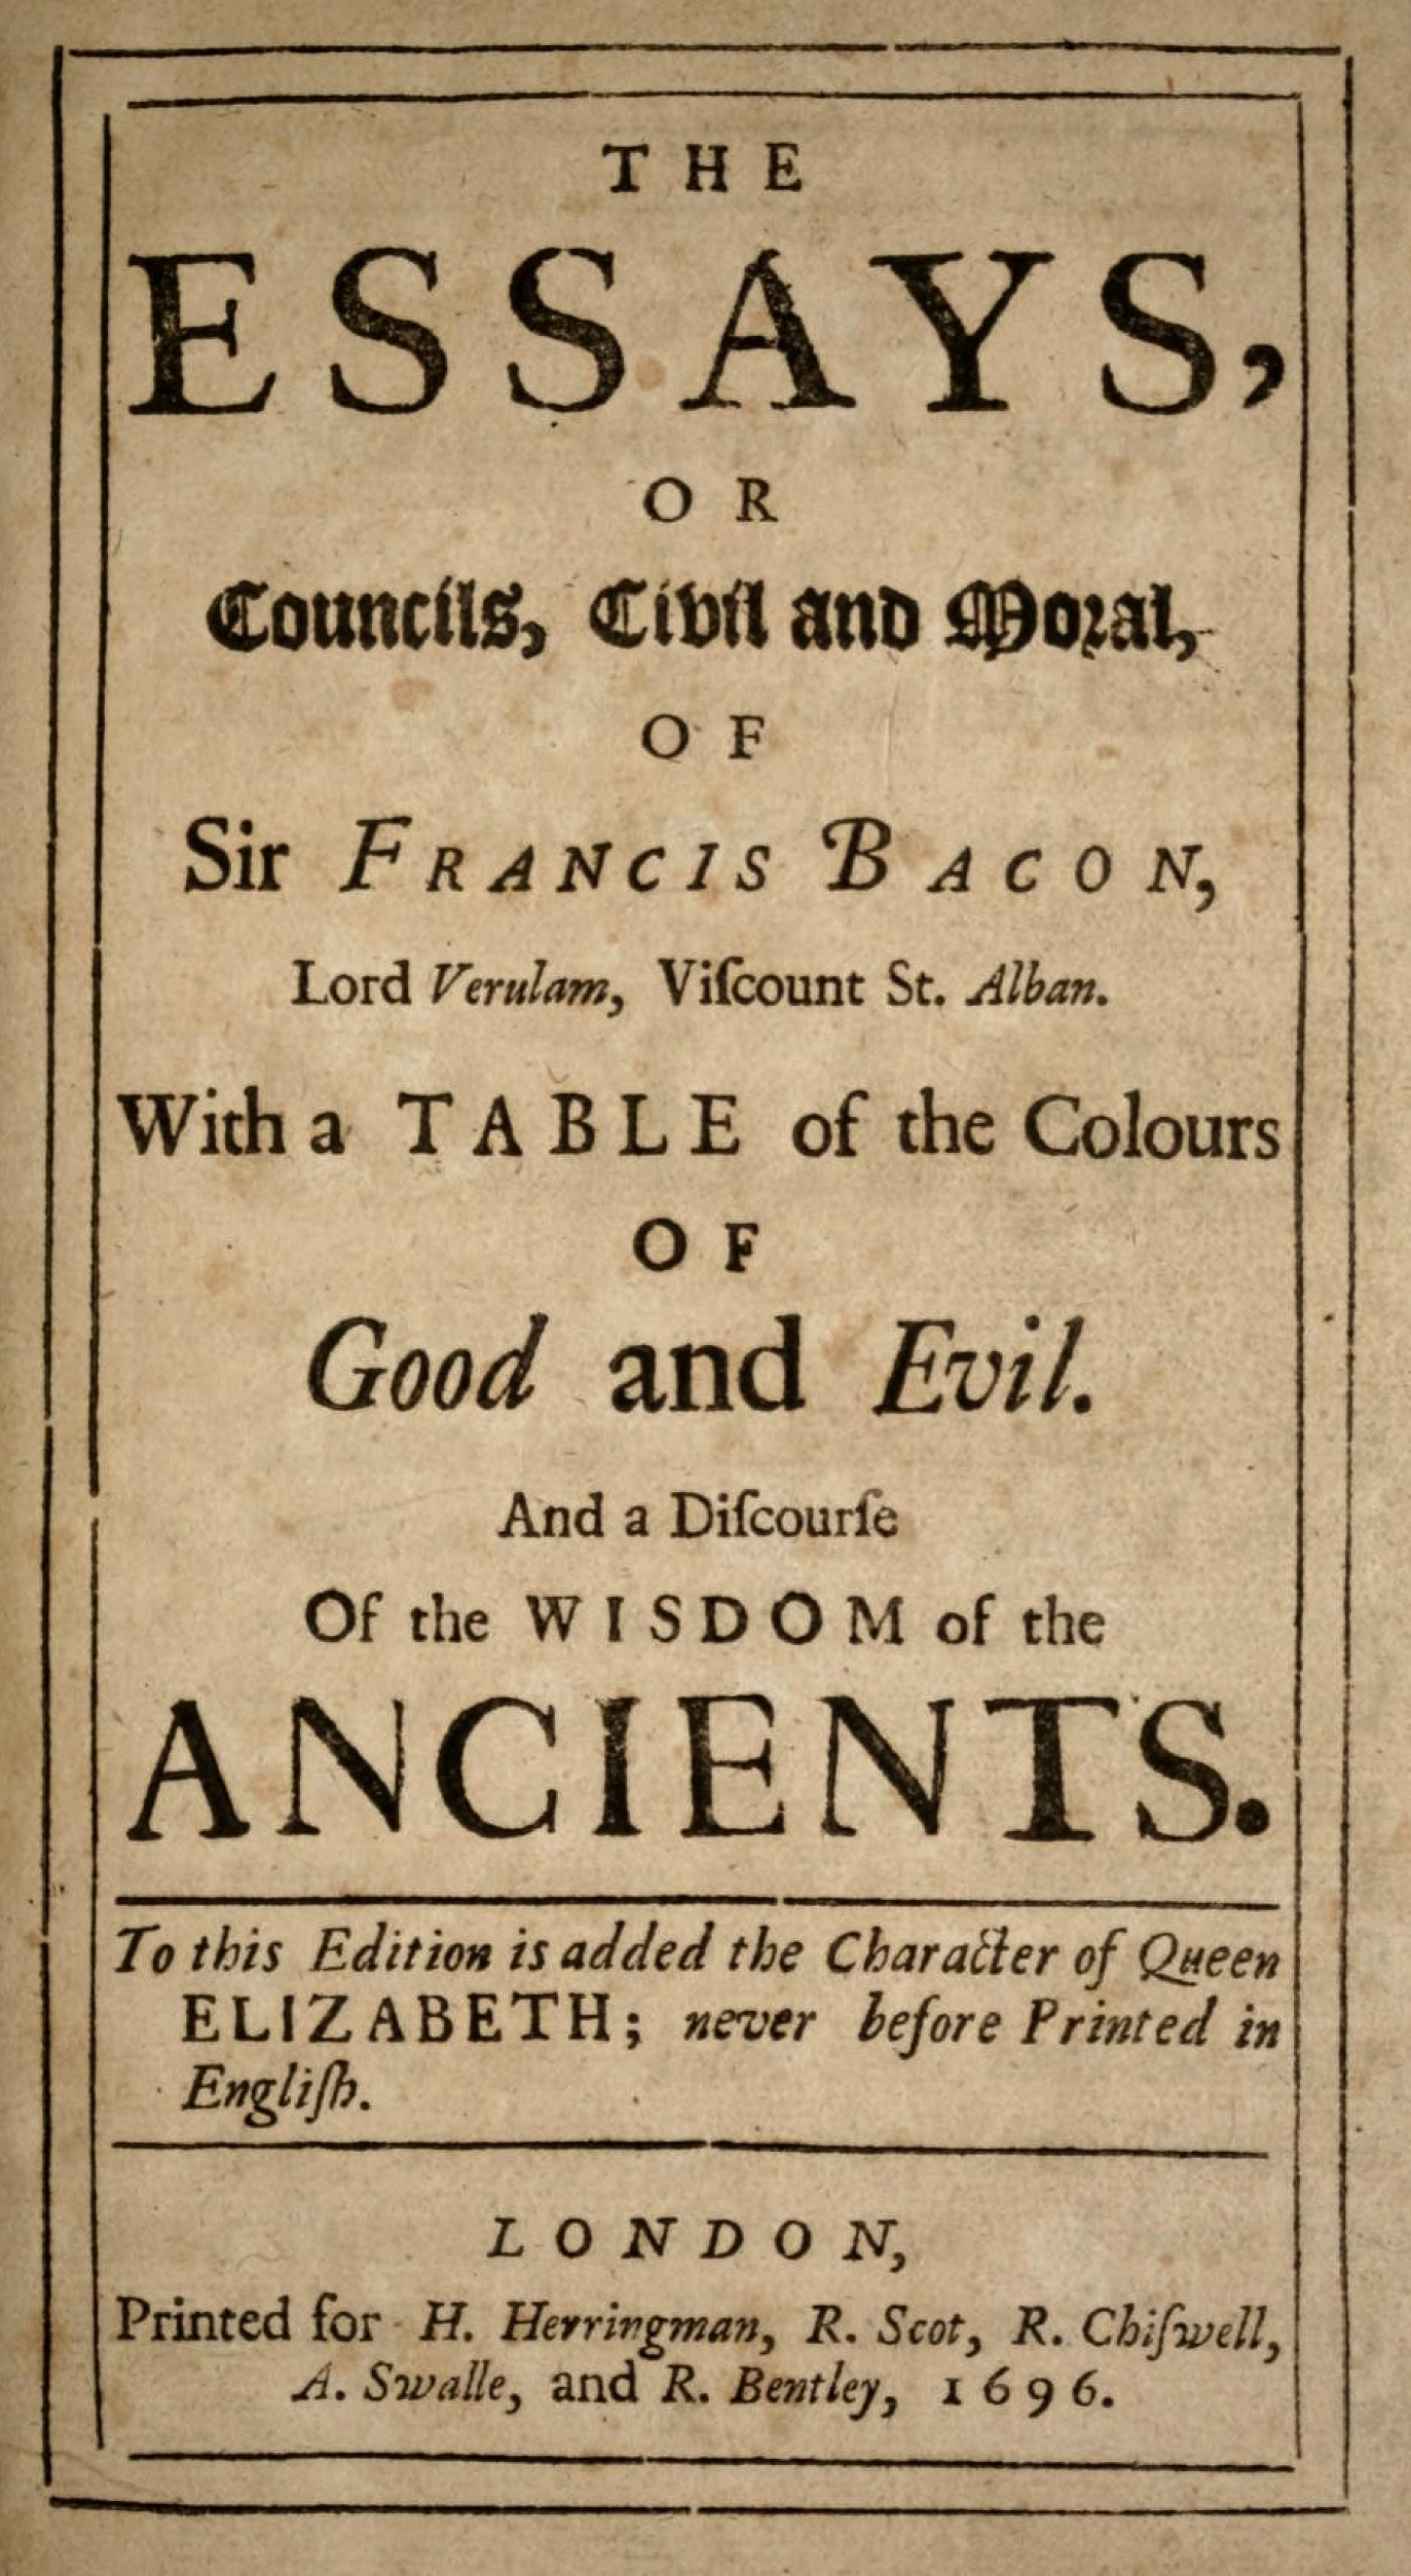 001 Essay Example Francis Bacon Essays 1696 Awesome Analysis Pdf Of Truth Download Critical Appreciation Bacon's 1920